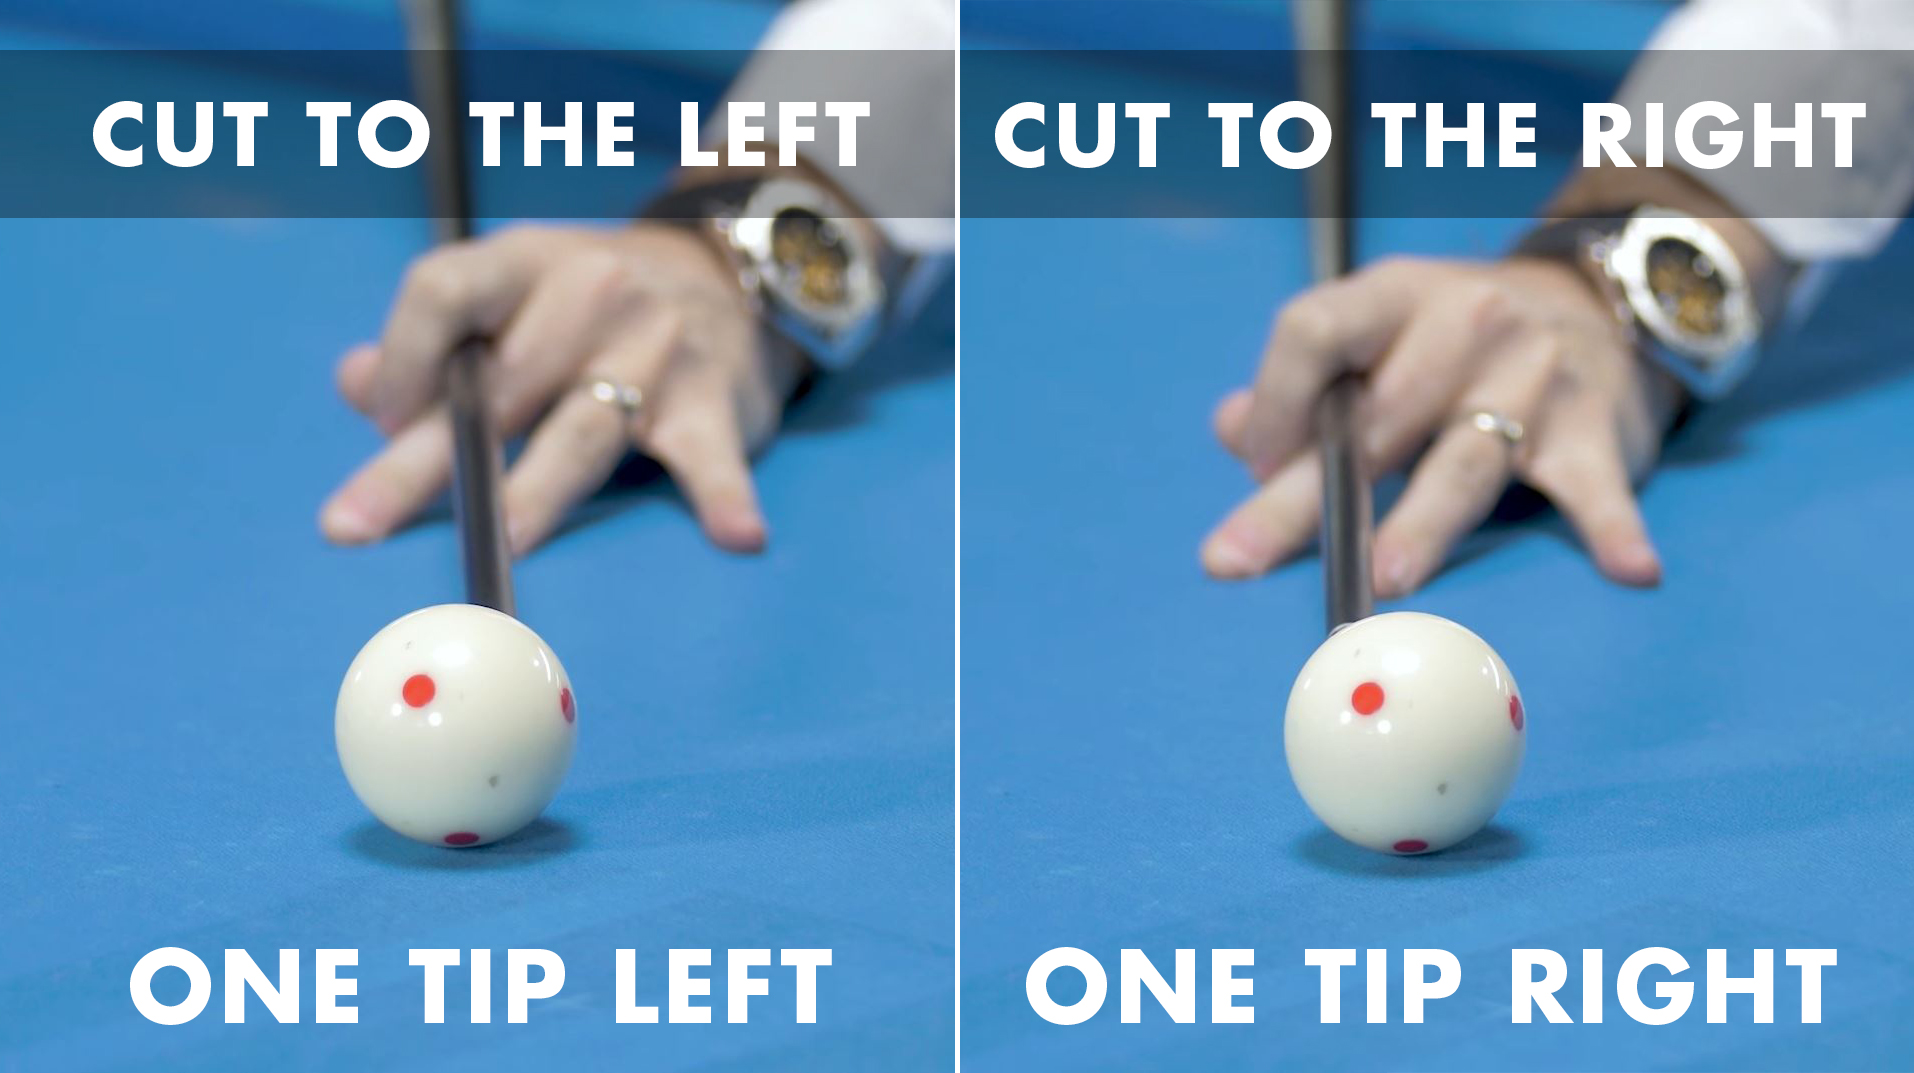 CTE aiming requires planting your bridge hand with one tip of left spin for left cut shots or one tip of right if cutting to the right.